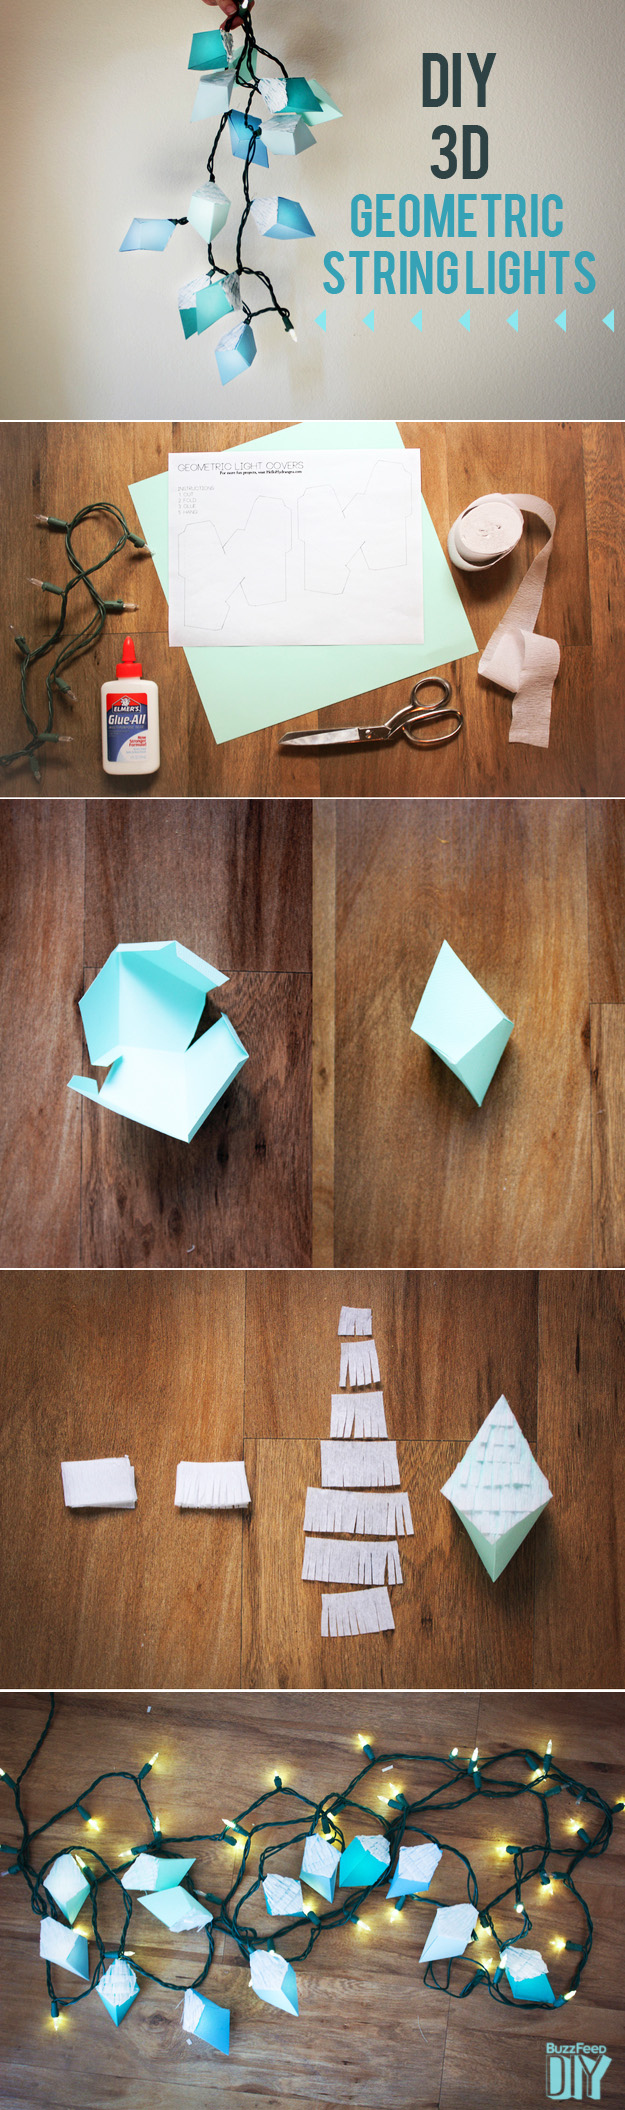 String Light DIY ideas for Cool Home Decor | 3-D Geometric Hexahedron String Lights are Fun for Teens Room, Dorm, Apartment or Home | http://diyprojectsforteens.com/diy-string-light-ideas/